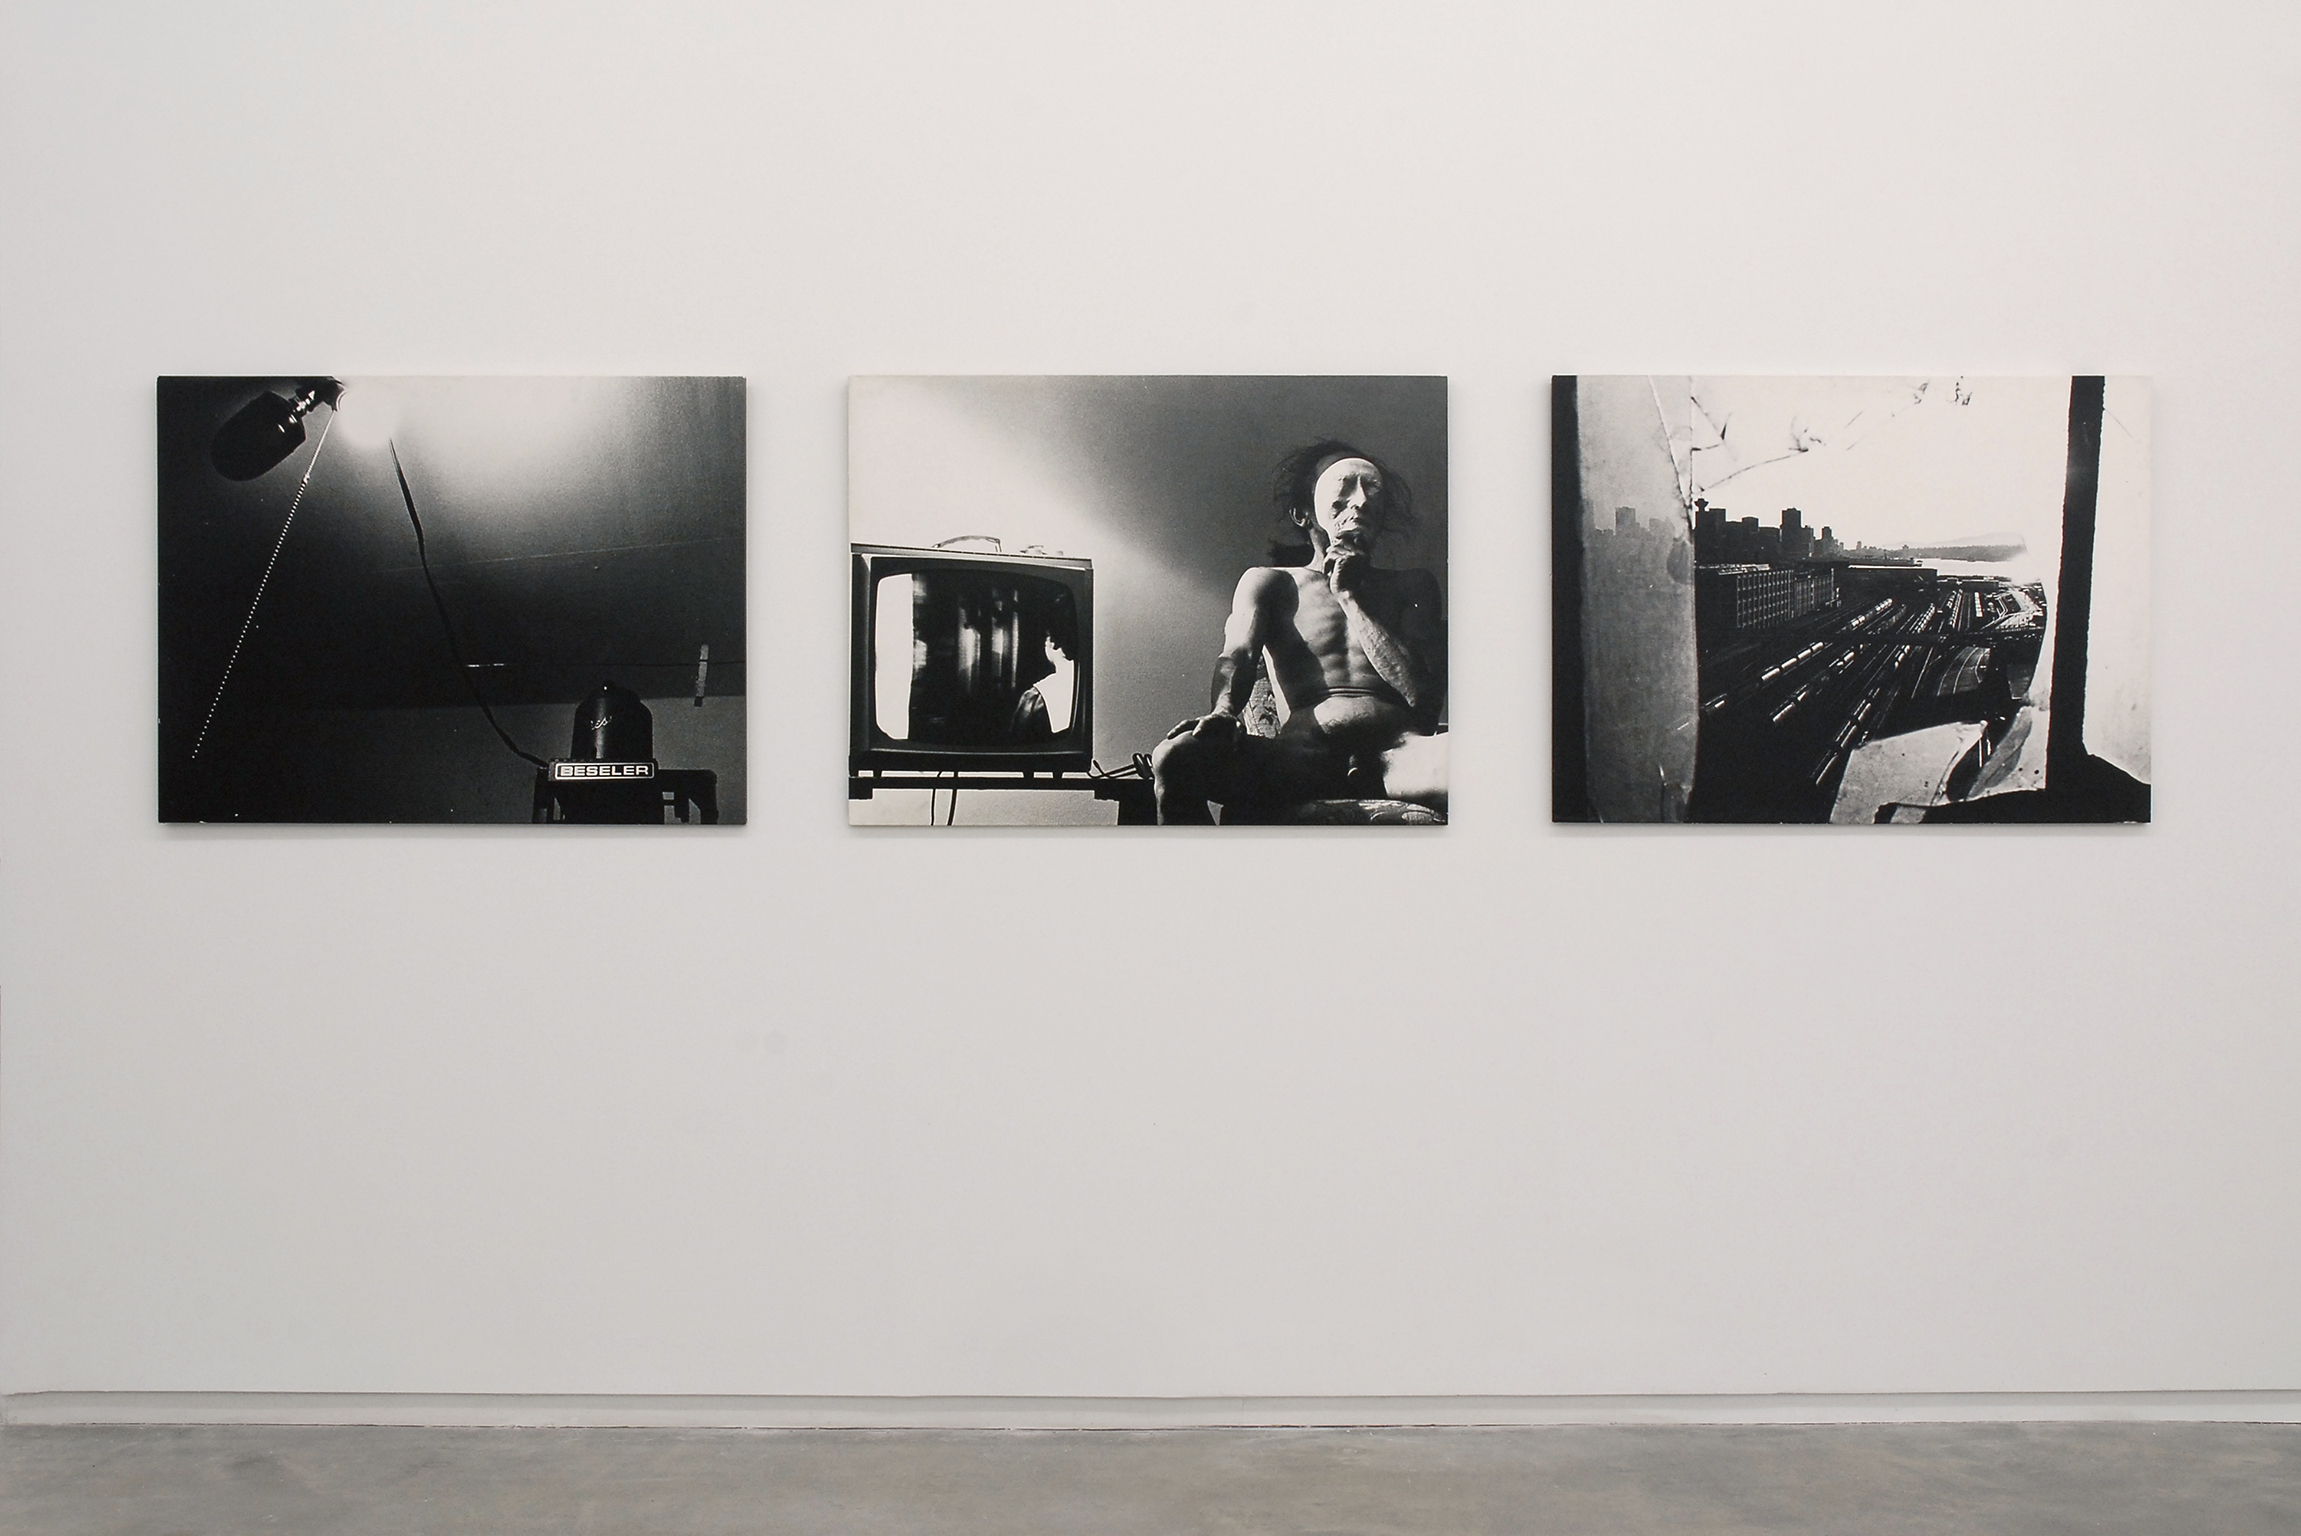 ​Roy Kiyooka, Untitled (From 13 Cameras), 3 panels, silver print photos, paper wrapped on wood panel, each 30 x 40 in. (77 x 102 cm) by